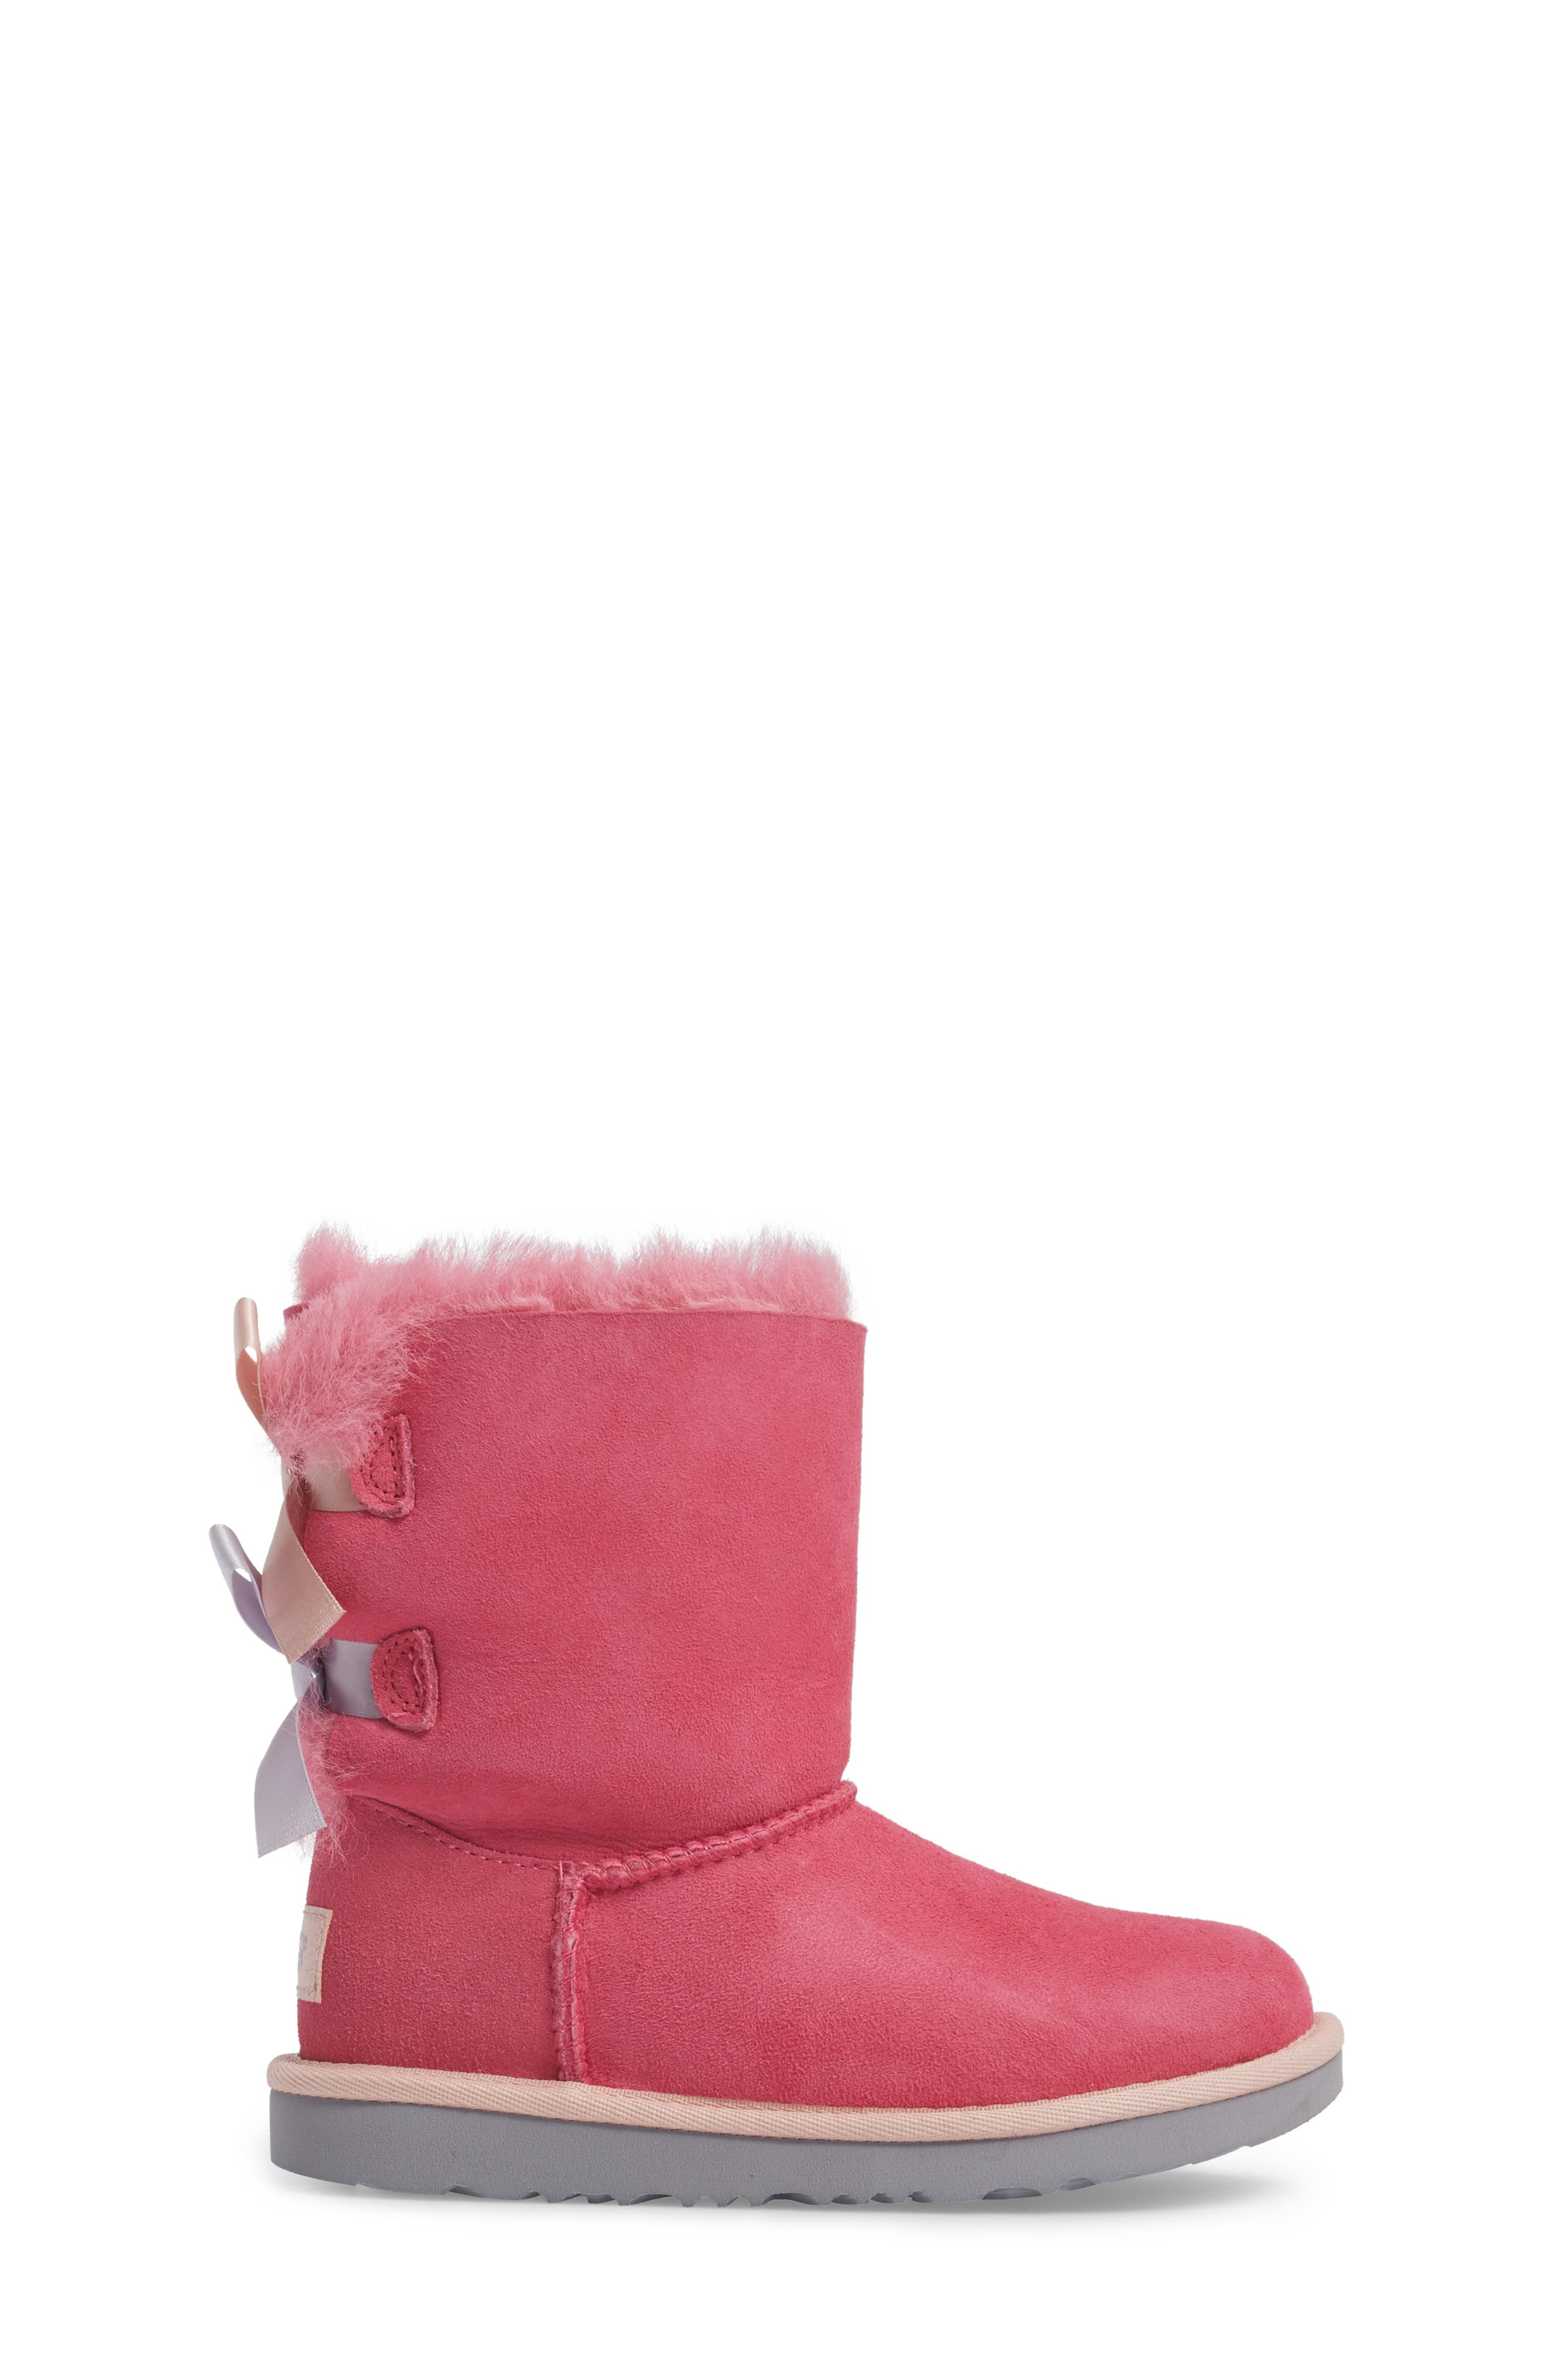 Bailey Bow II Water Resistant Genuine Shearling Boot,                             Alternate thumbnail 3, color,                             Pink/ Blue Suede